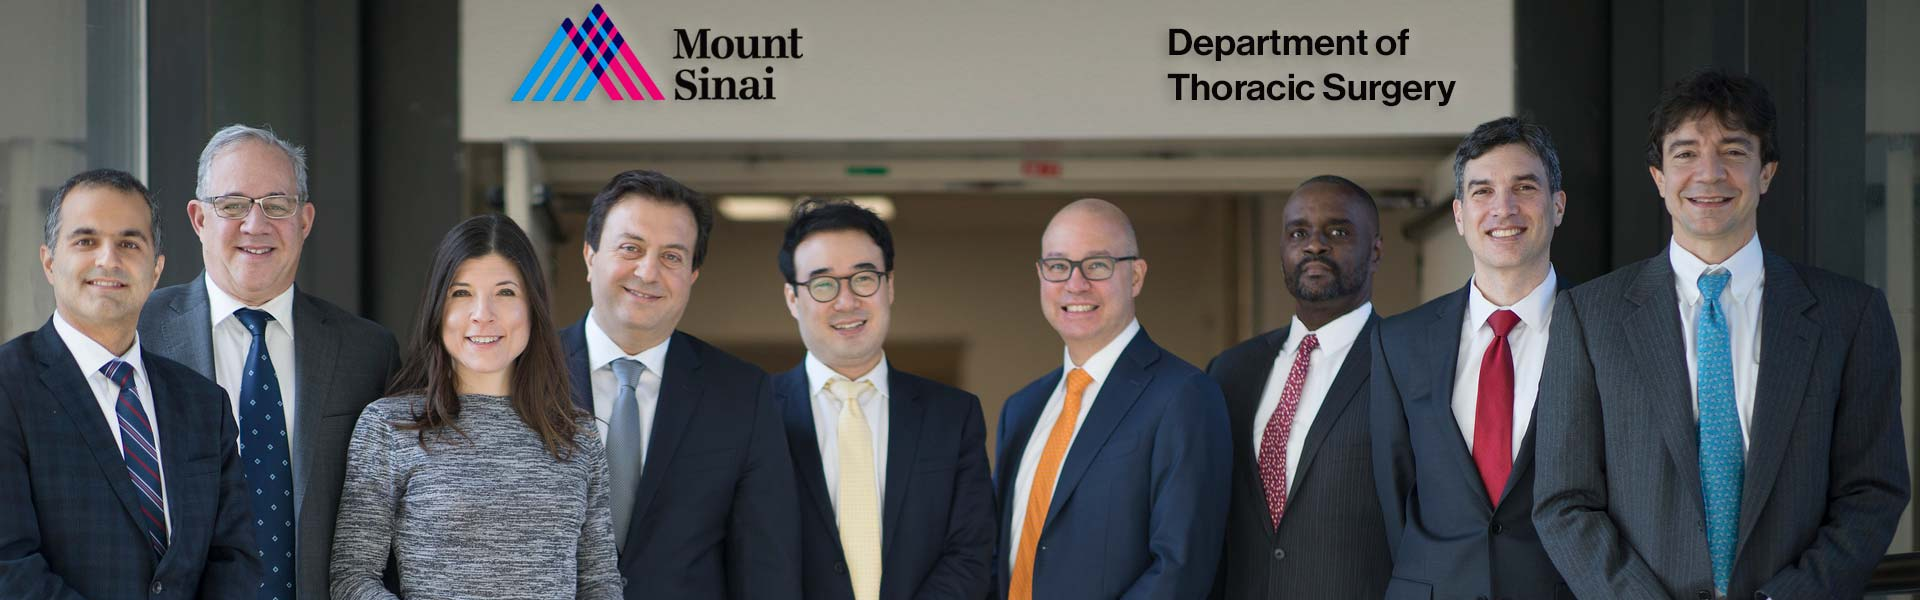 Image of Thoracic Surgery team